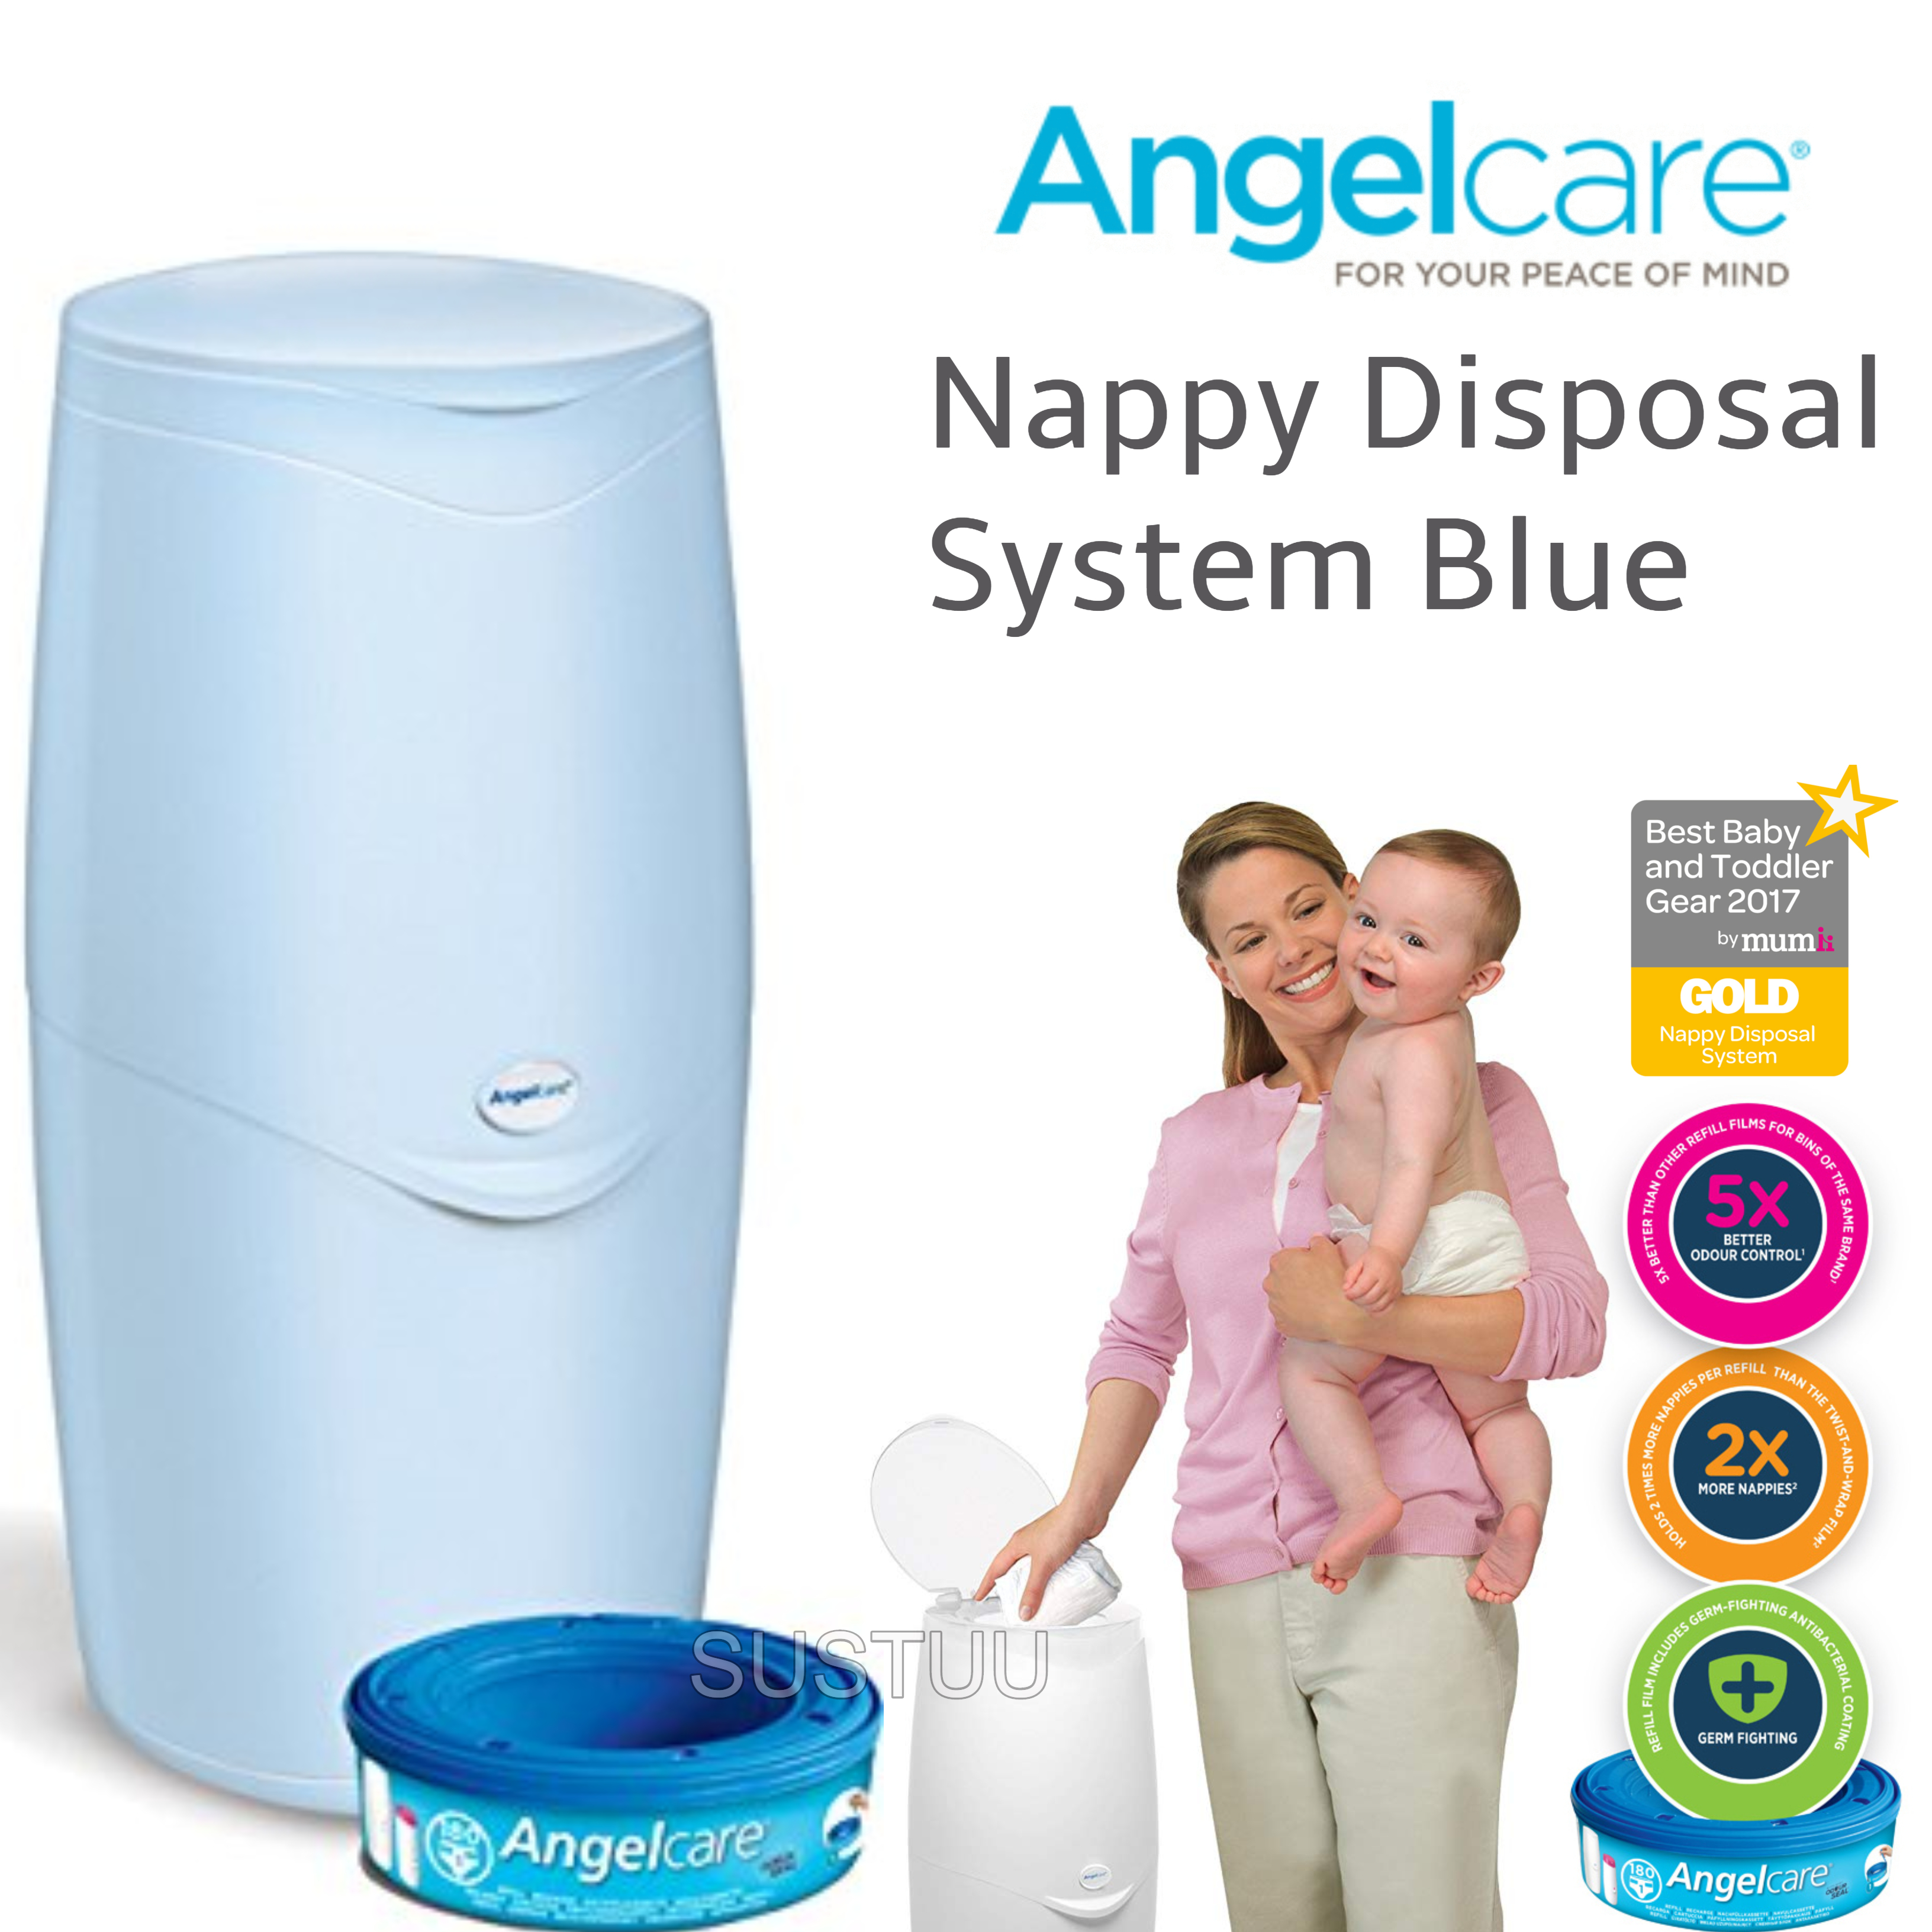 Angelcare Nappy Disposal System|Baby/Kid's Nappies/Diapers Cleaning Bin|Blue|